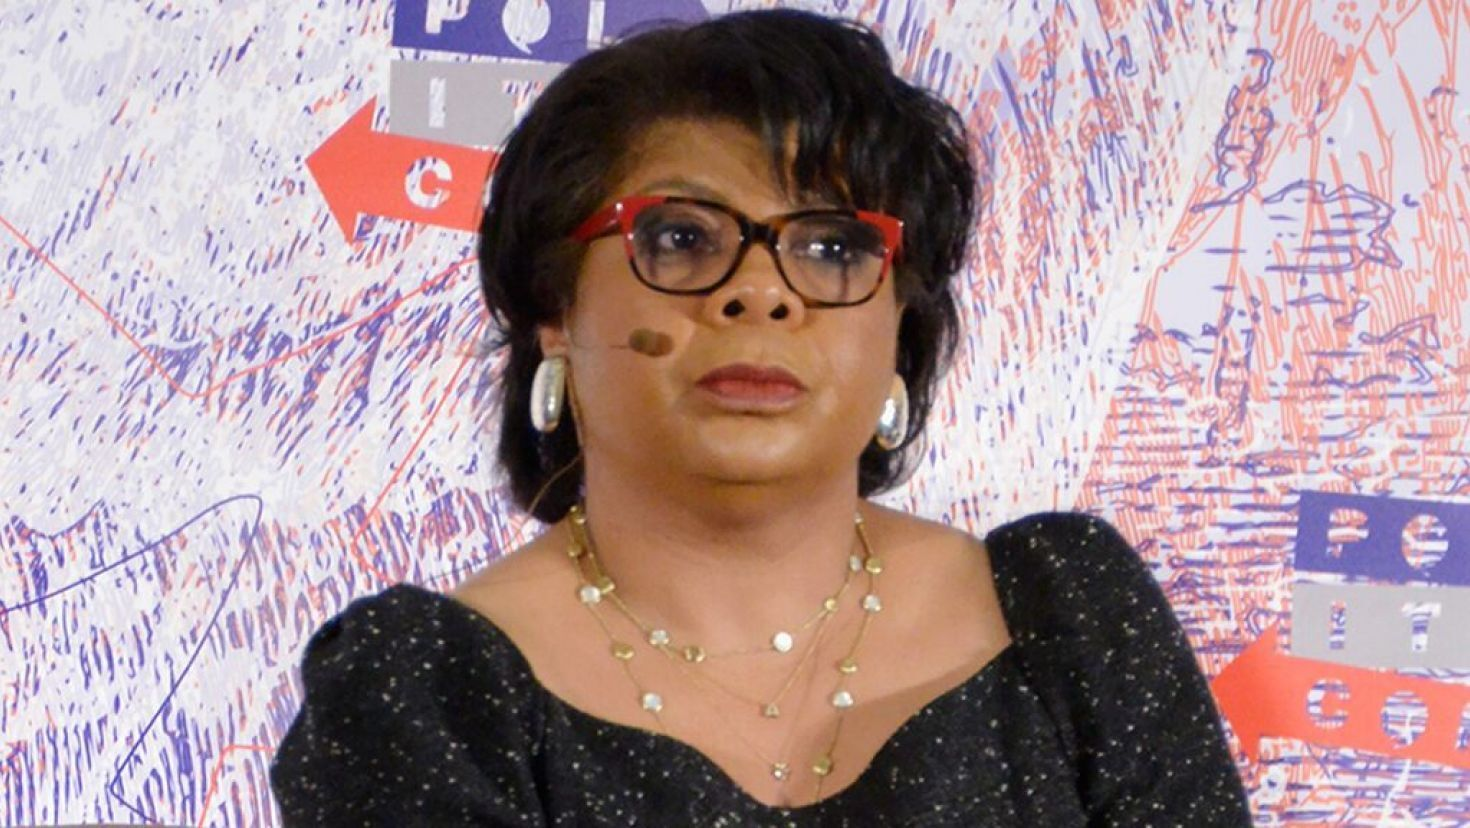 Cnn S April Ryan Cannot Wait To See Armed Forces Pull Trump Out Of The White House In 2020 April Ryan Cnn Fox News Hosts